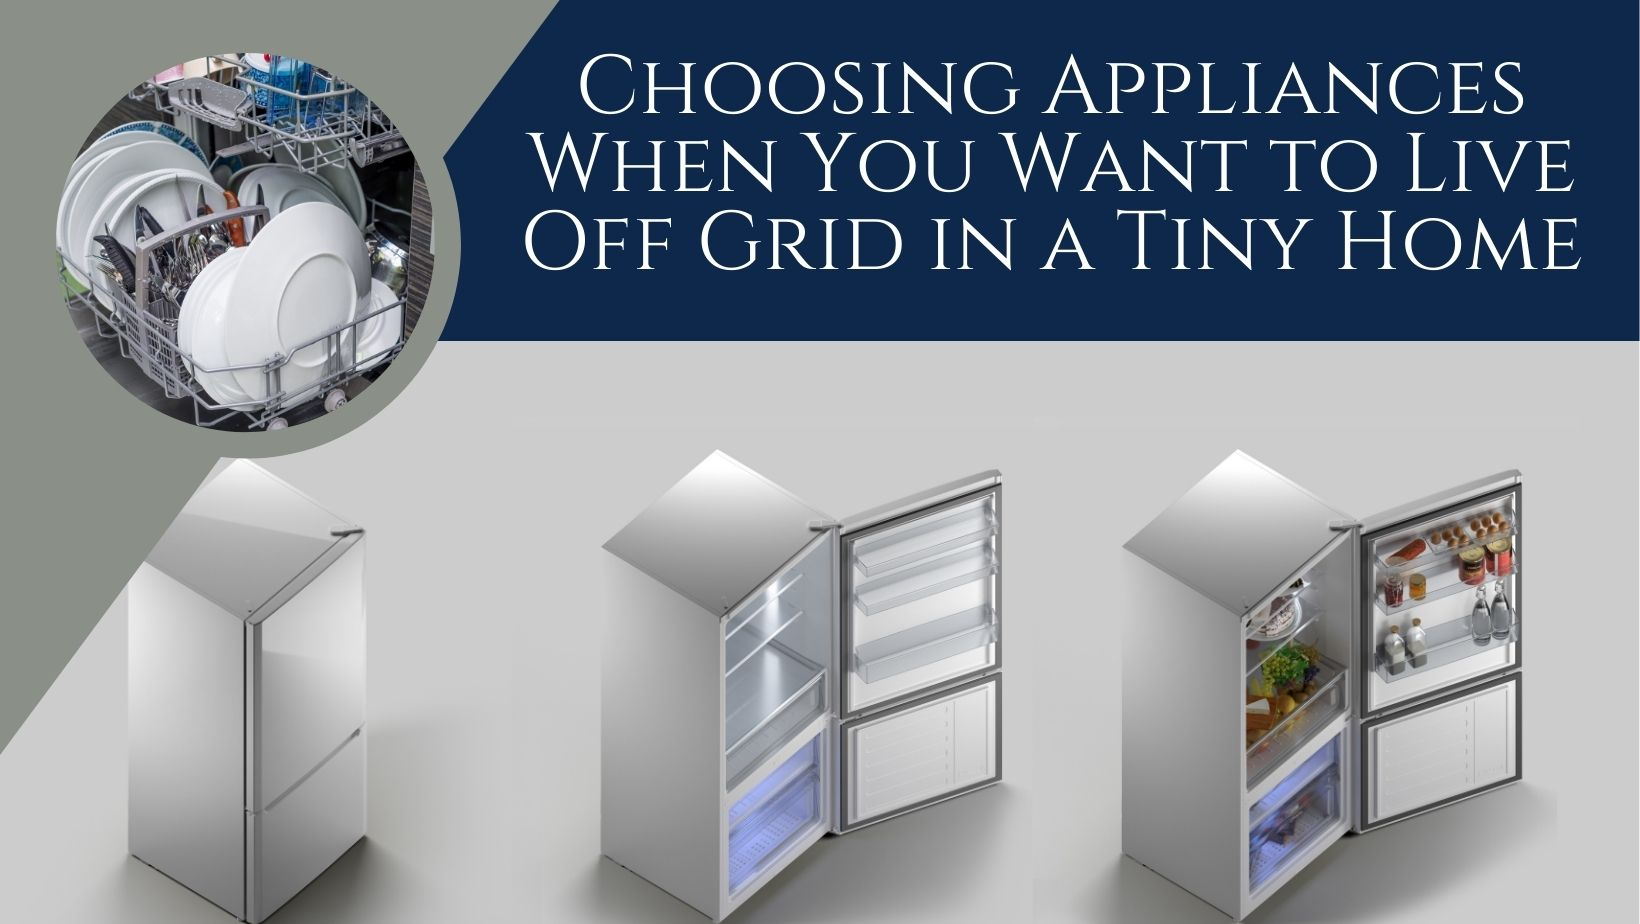 Choosing Appliances When You Want to Live Off Grid in a Tiny Home